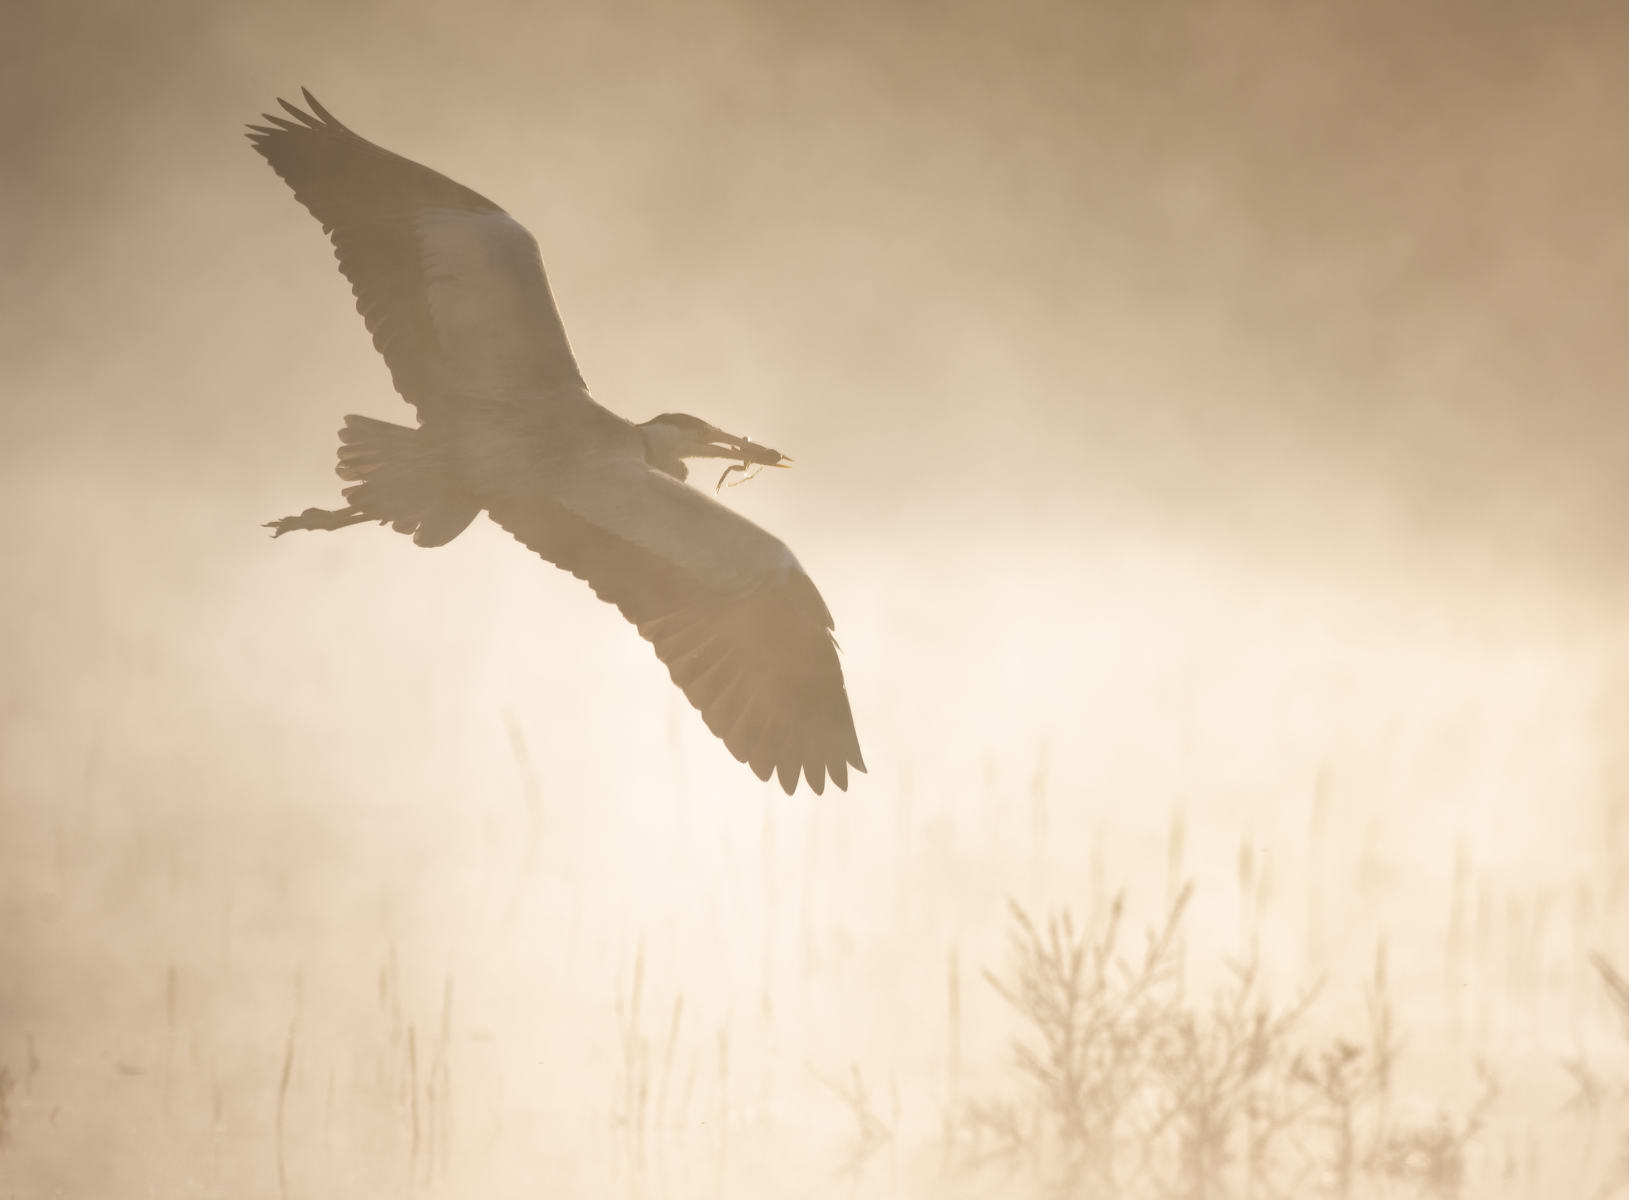 grey heron carrying off a frog into the mist